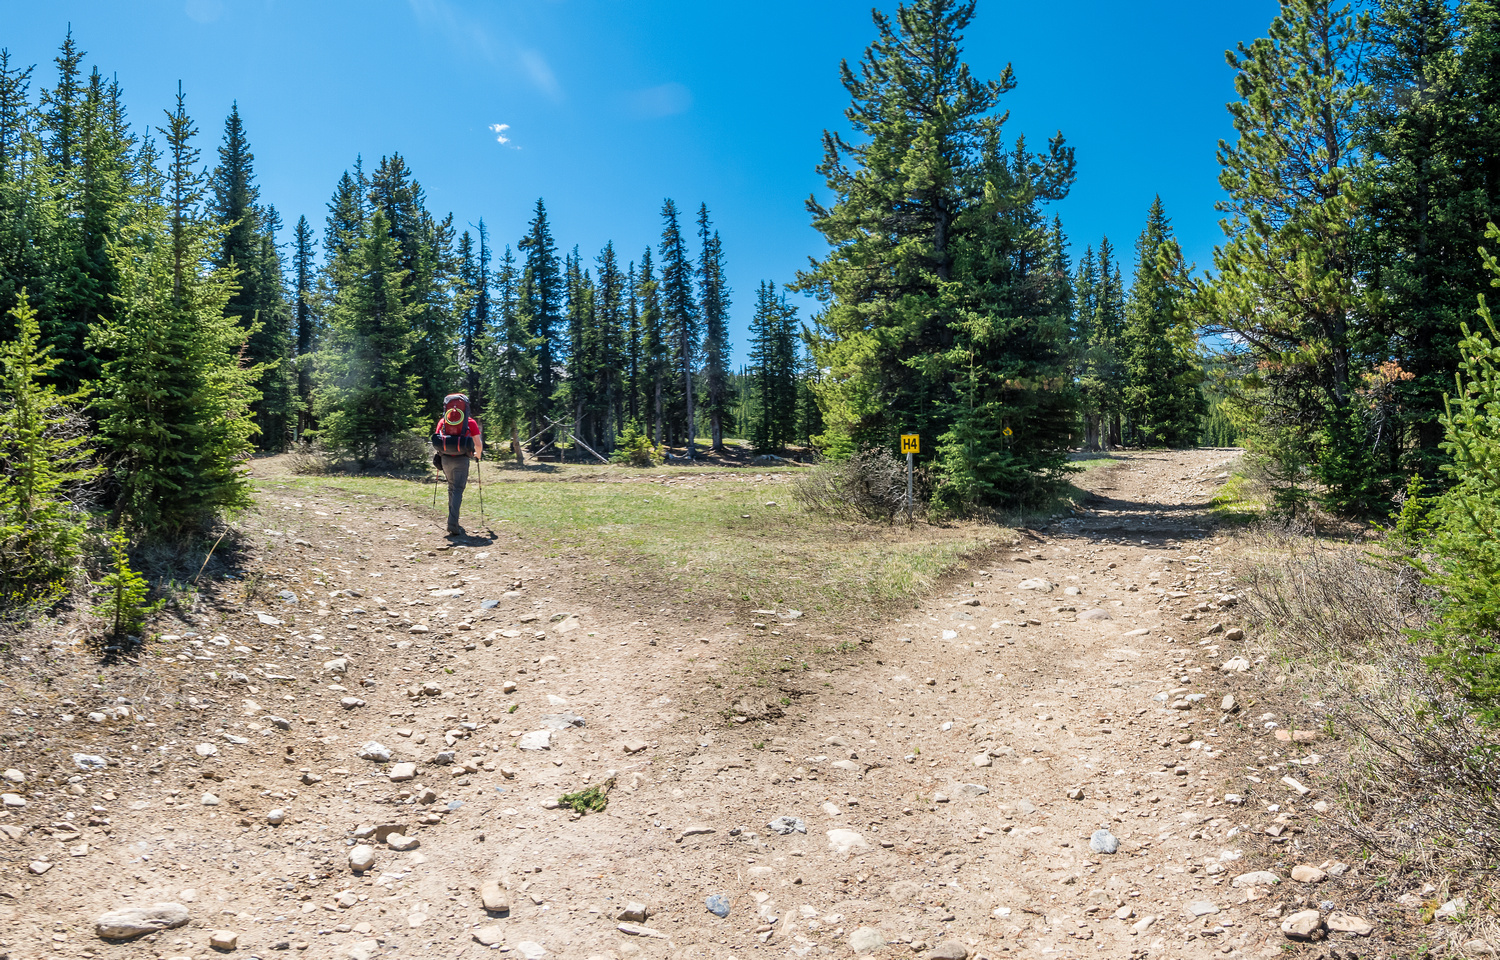 At the Onion Lake campsite.